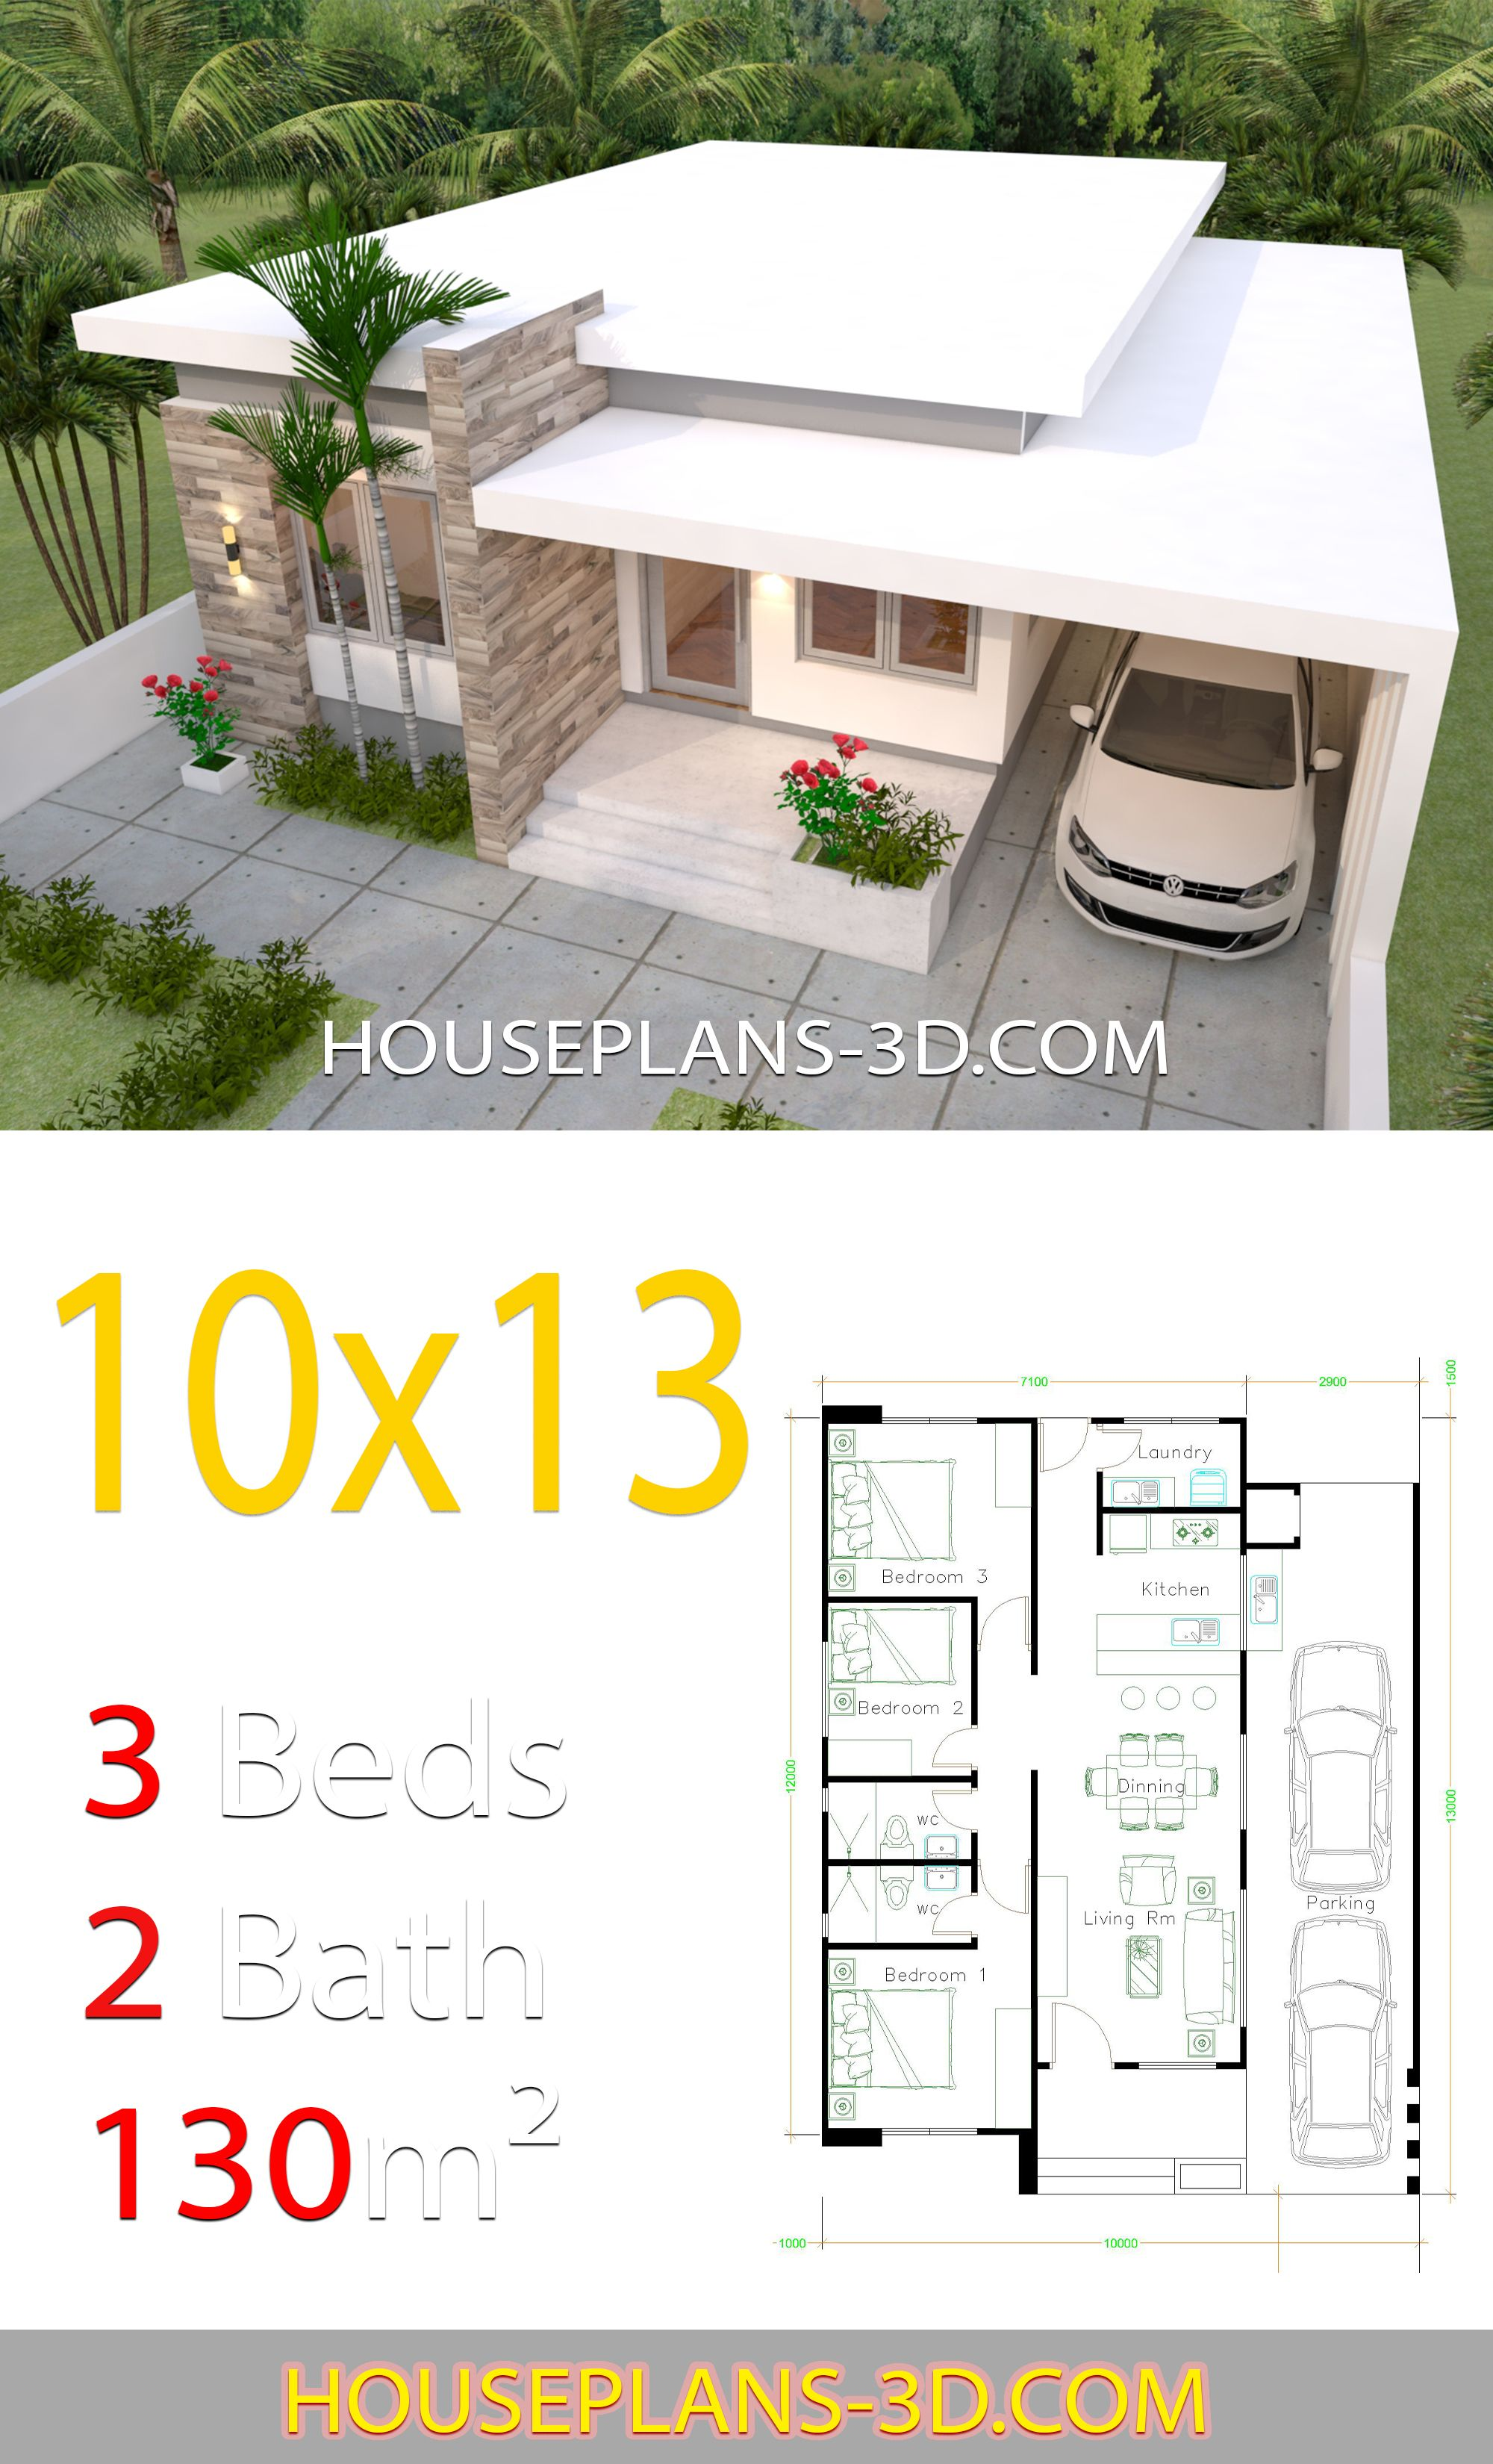 House Design 10x13 With 3 Bedrooms Full Plans House Plans 3d In 2020 House Construction Plan Unique House Design Small House Design Plans